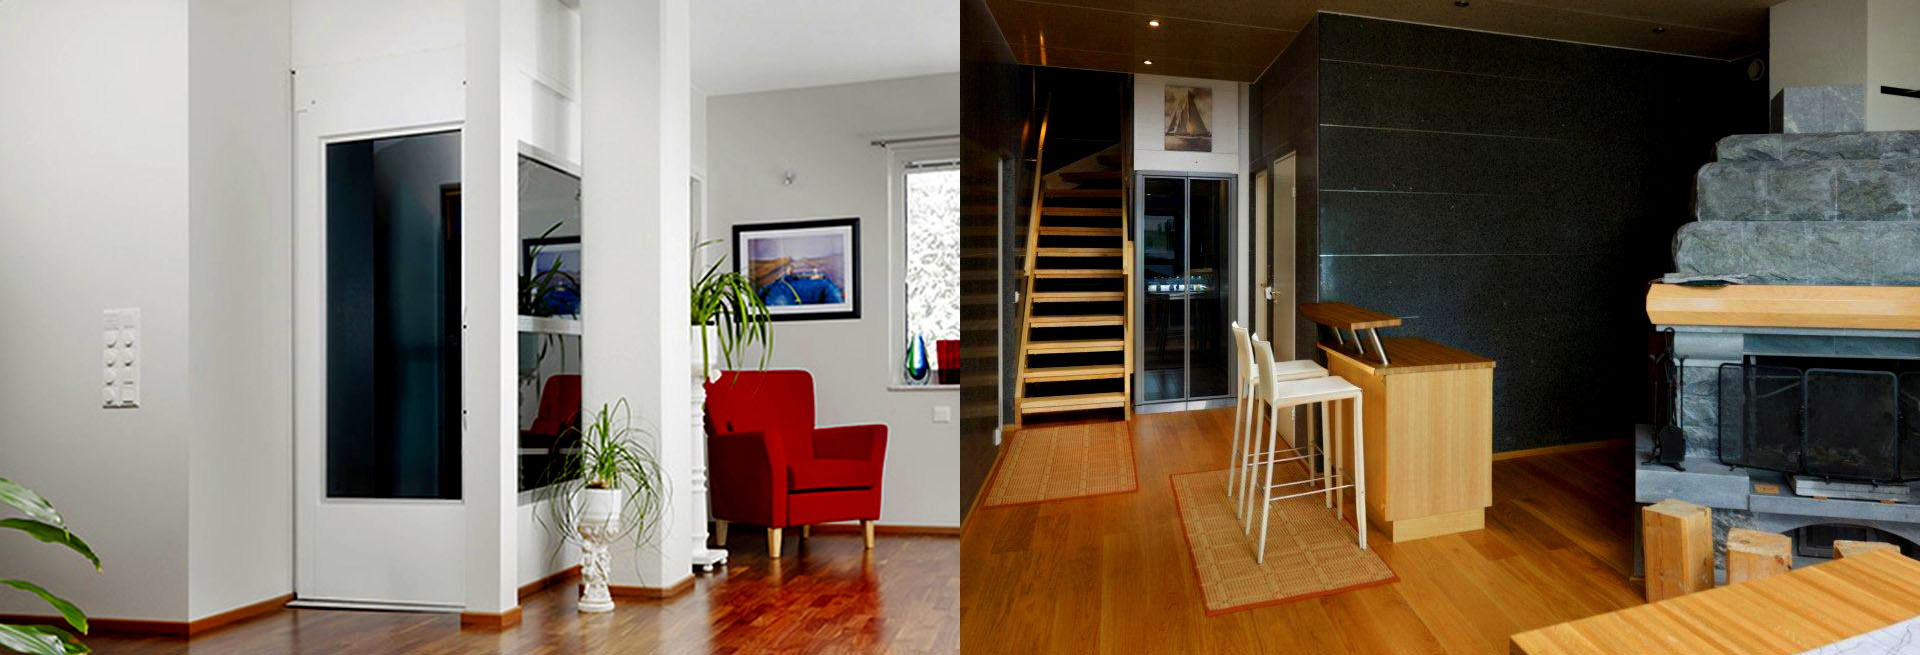 House Lifts Slideshow Banner Image